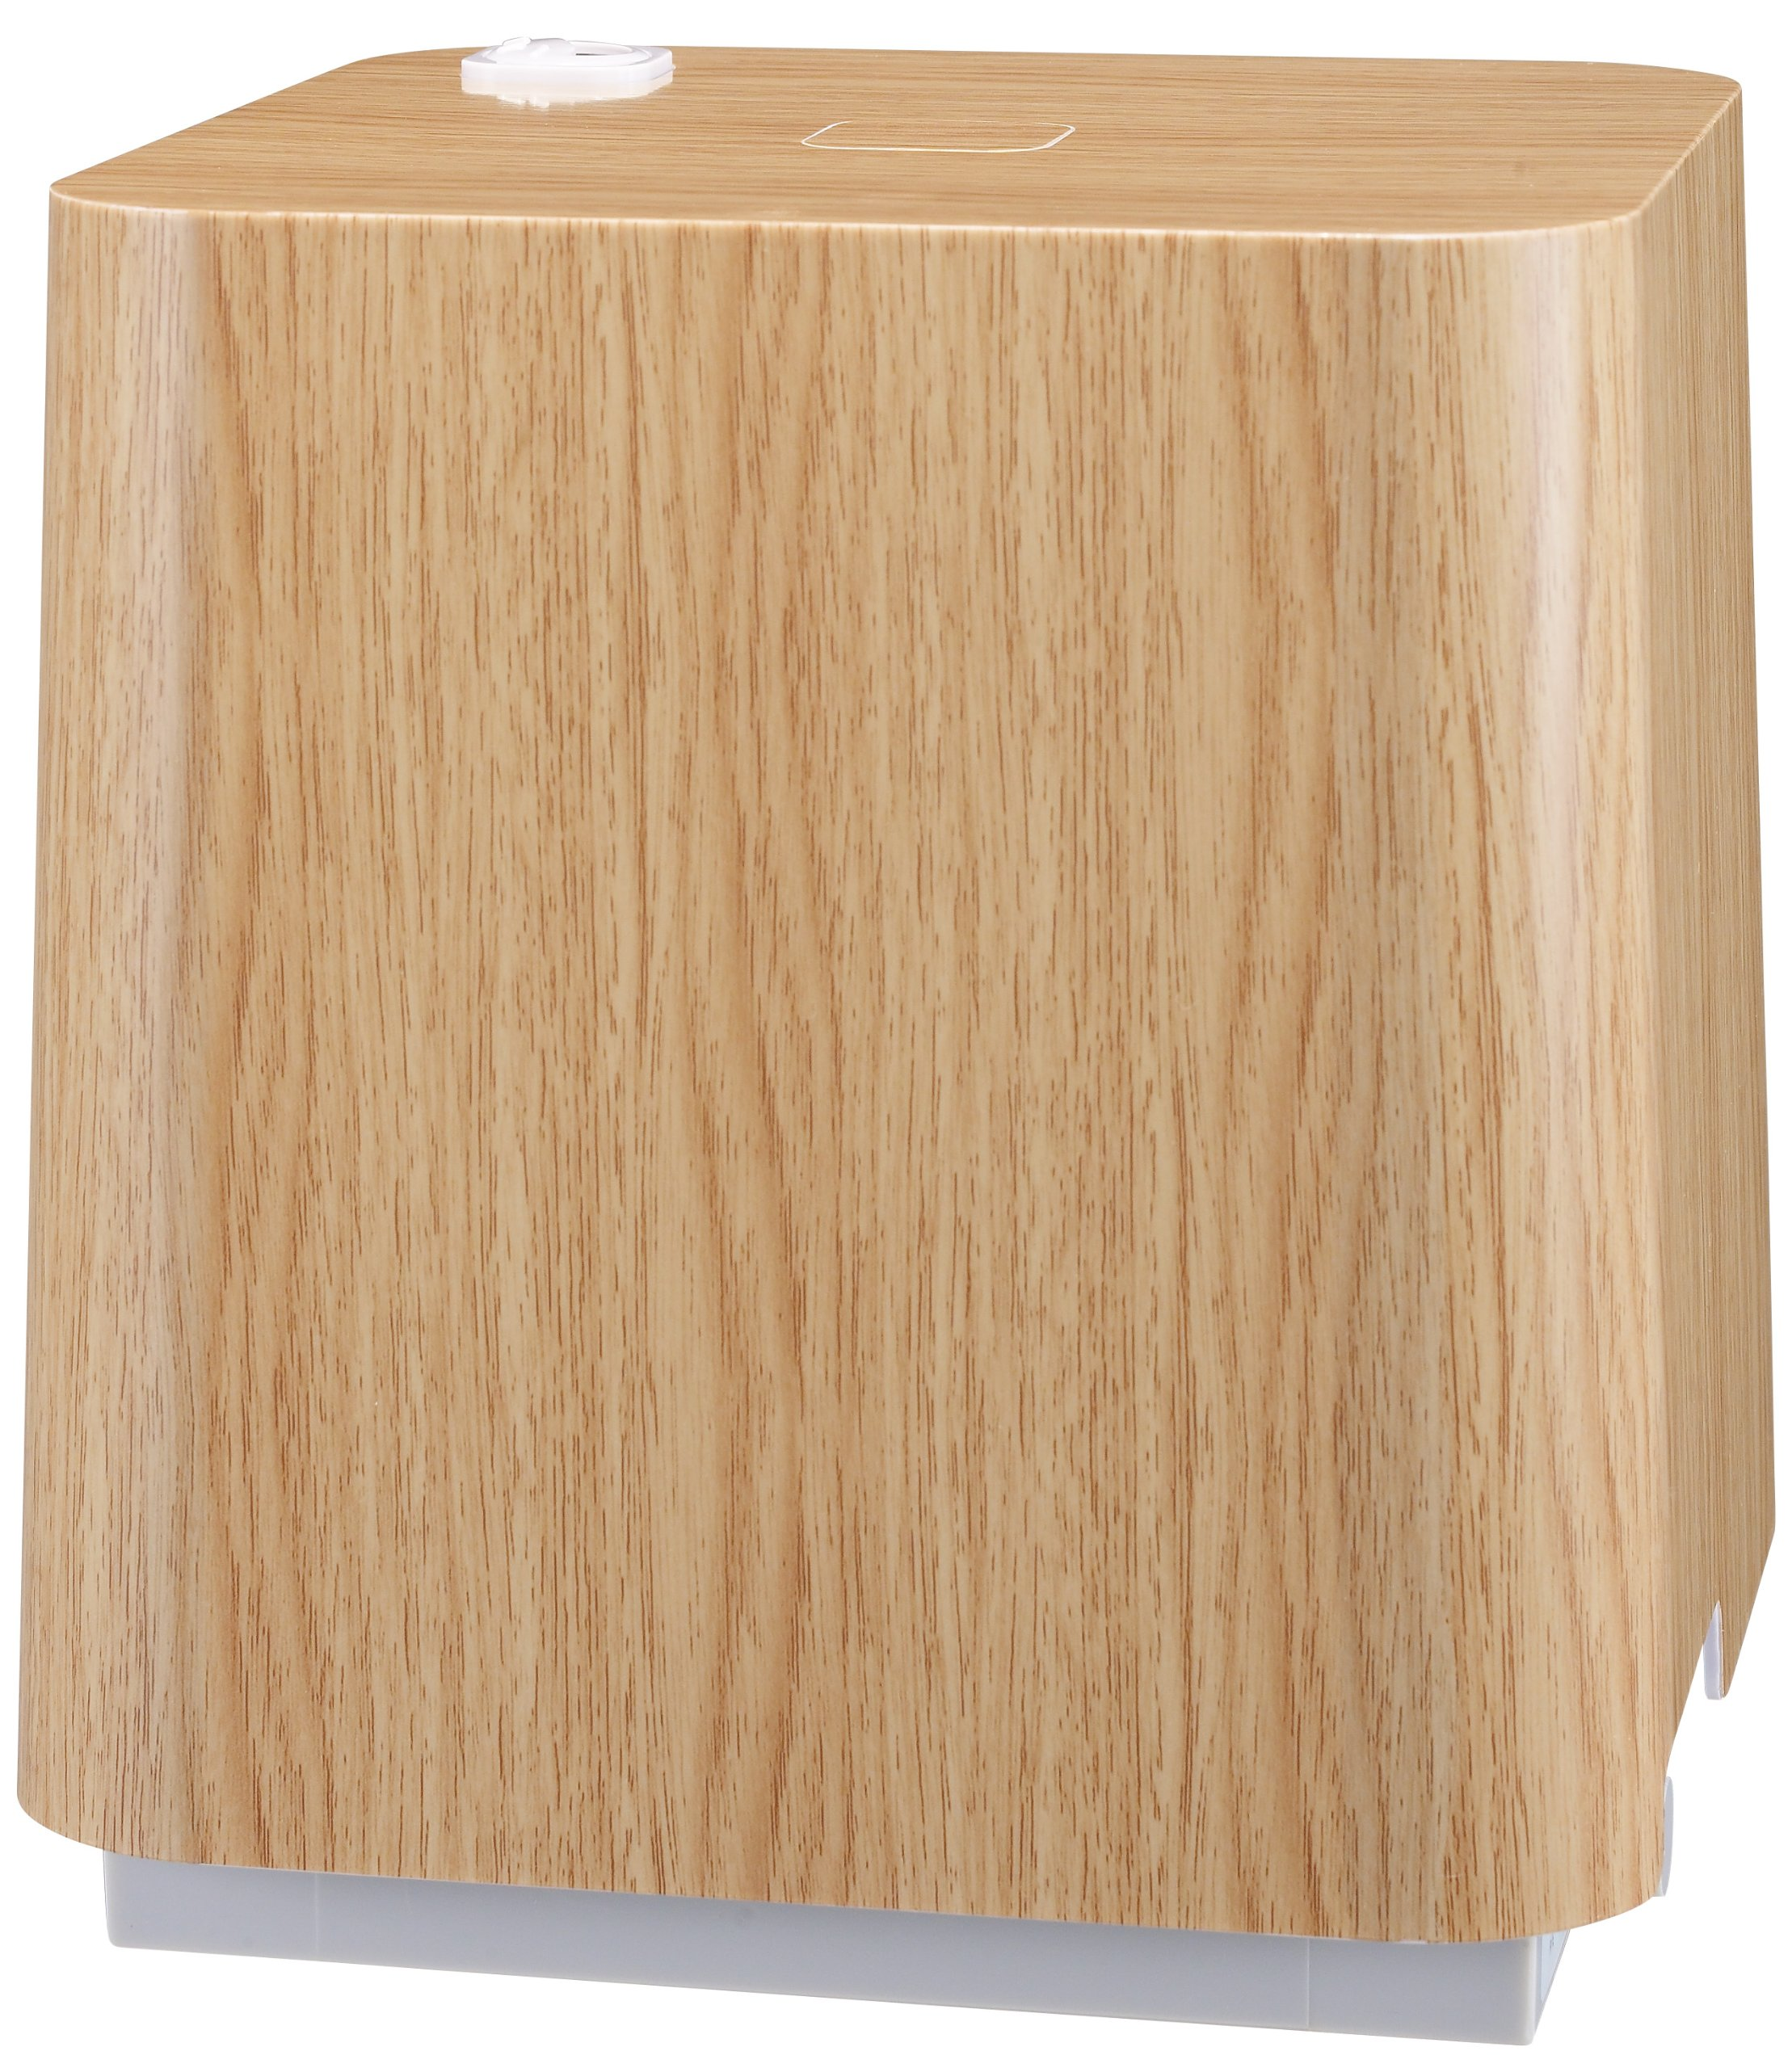 Comfoom ultrasonic humidifier Natural Wood humidification amount stepless adjustment mood lamp DKW-1401NWD From import JPN by Doshisha (Image #6)